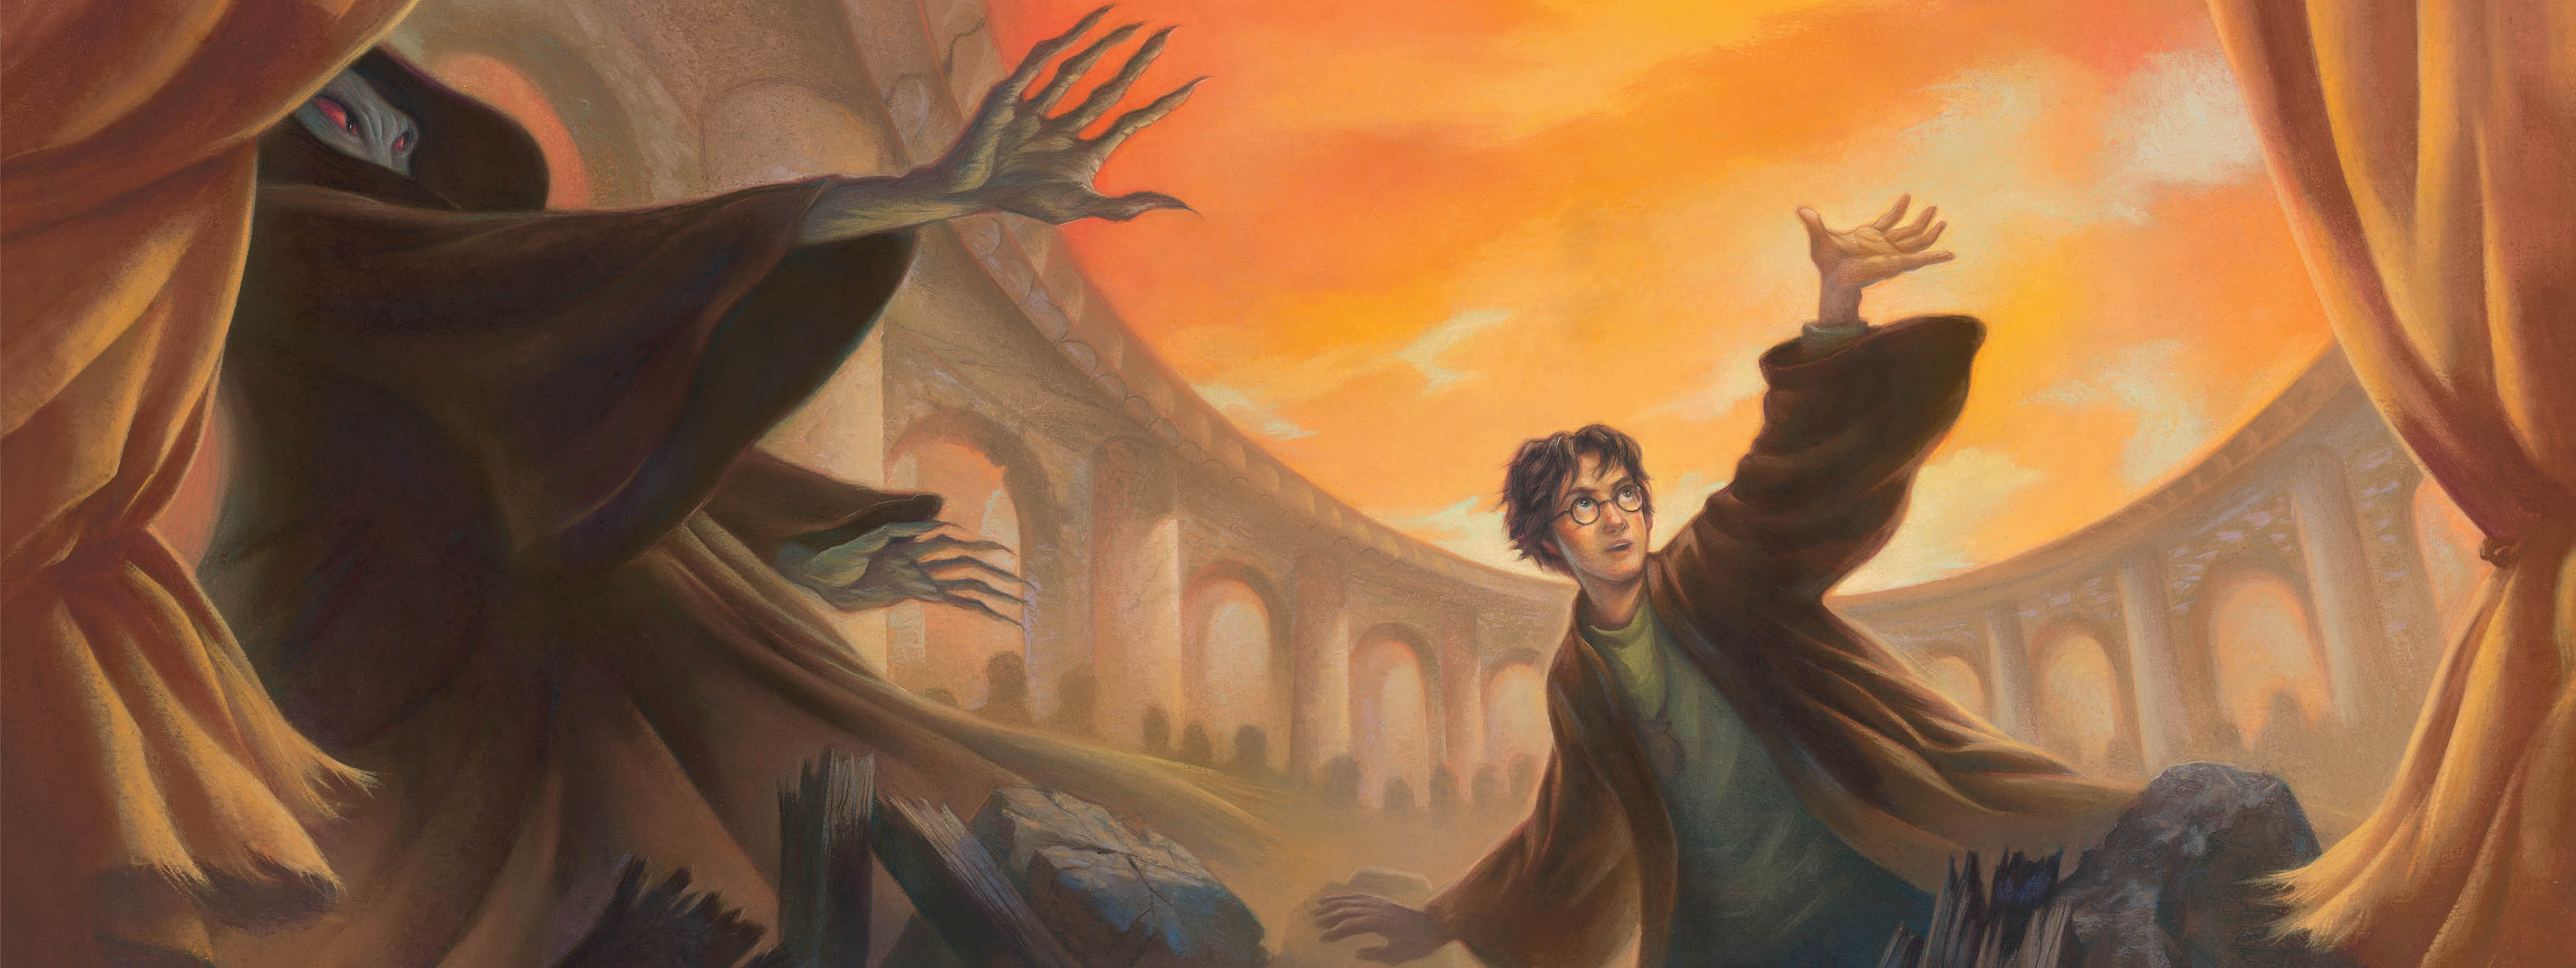 hpl  harry potter and the deathly hallows